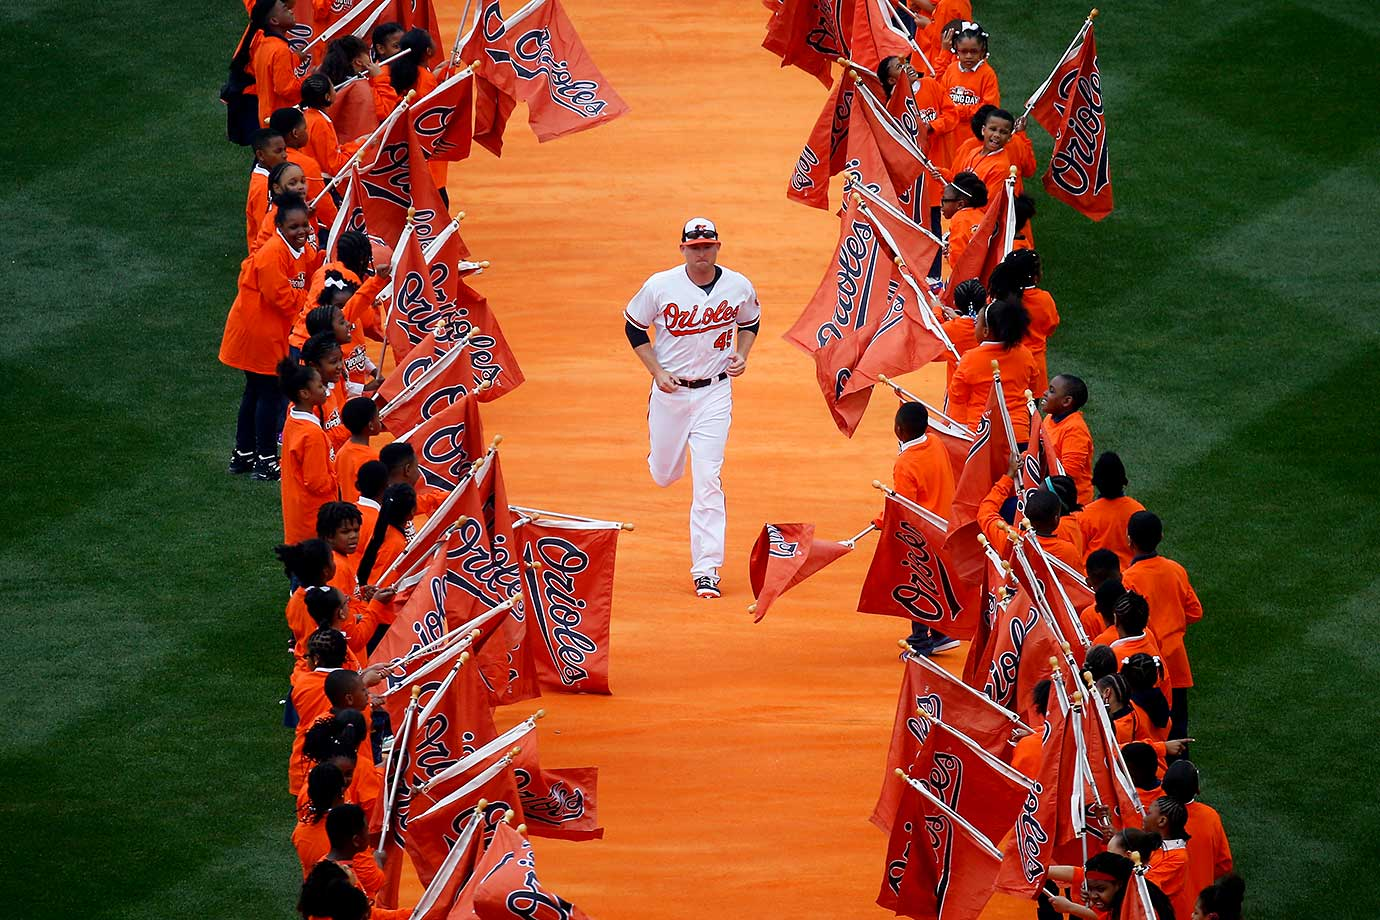 Mark Trumbo of the Orioles is introduced before the start of Baltimore's game against Minnesota.